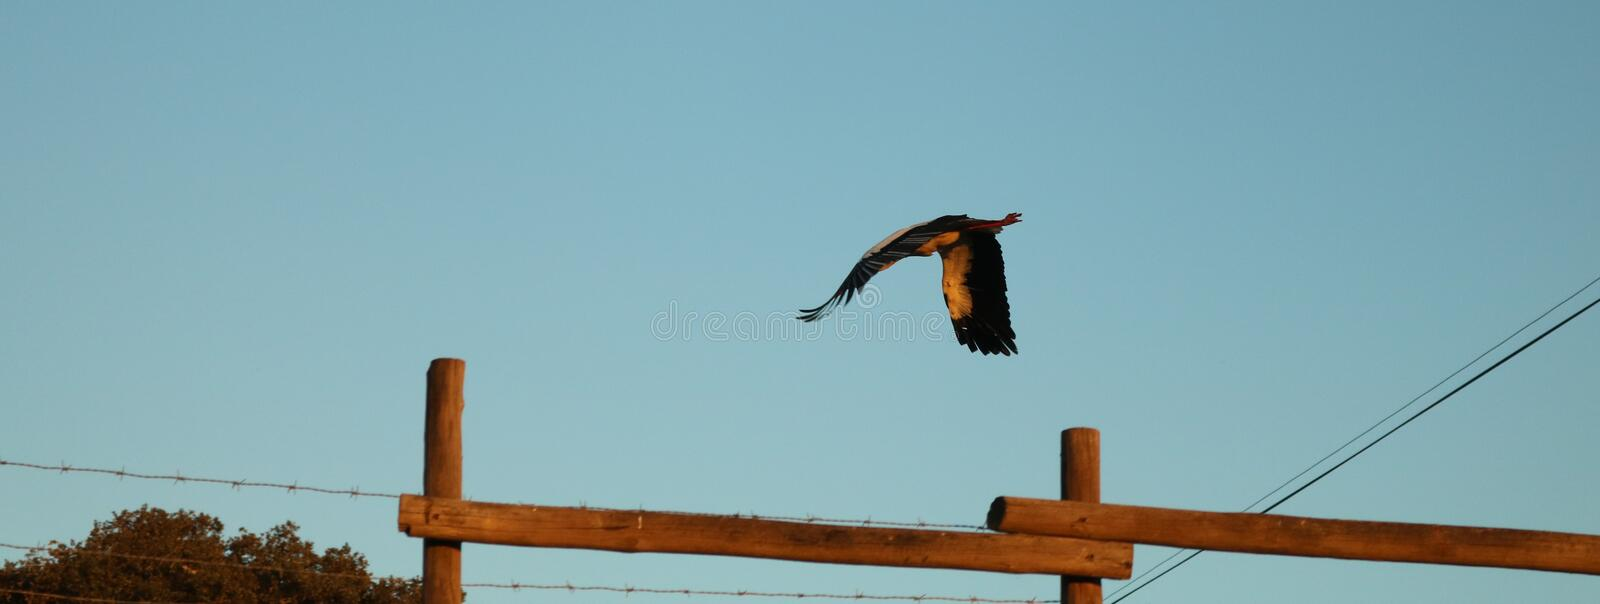 Stork flying over fence. Silhouette stork flying over wire fence. Portugal. Europe. Free royalty free stock photos